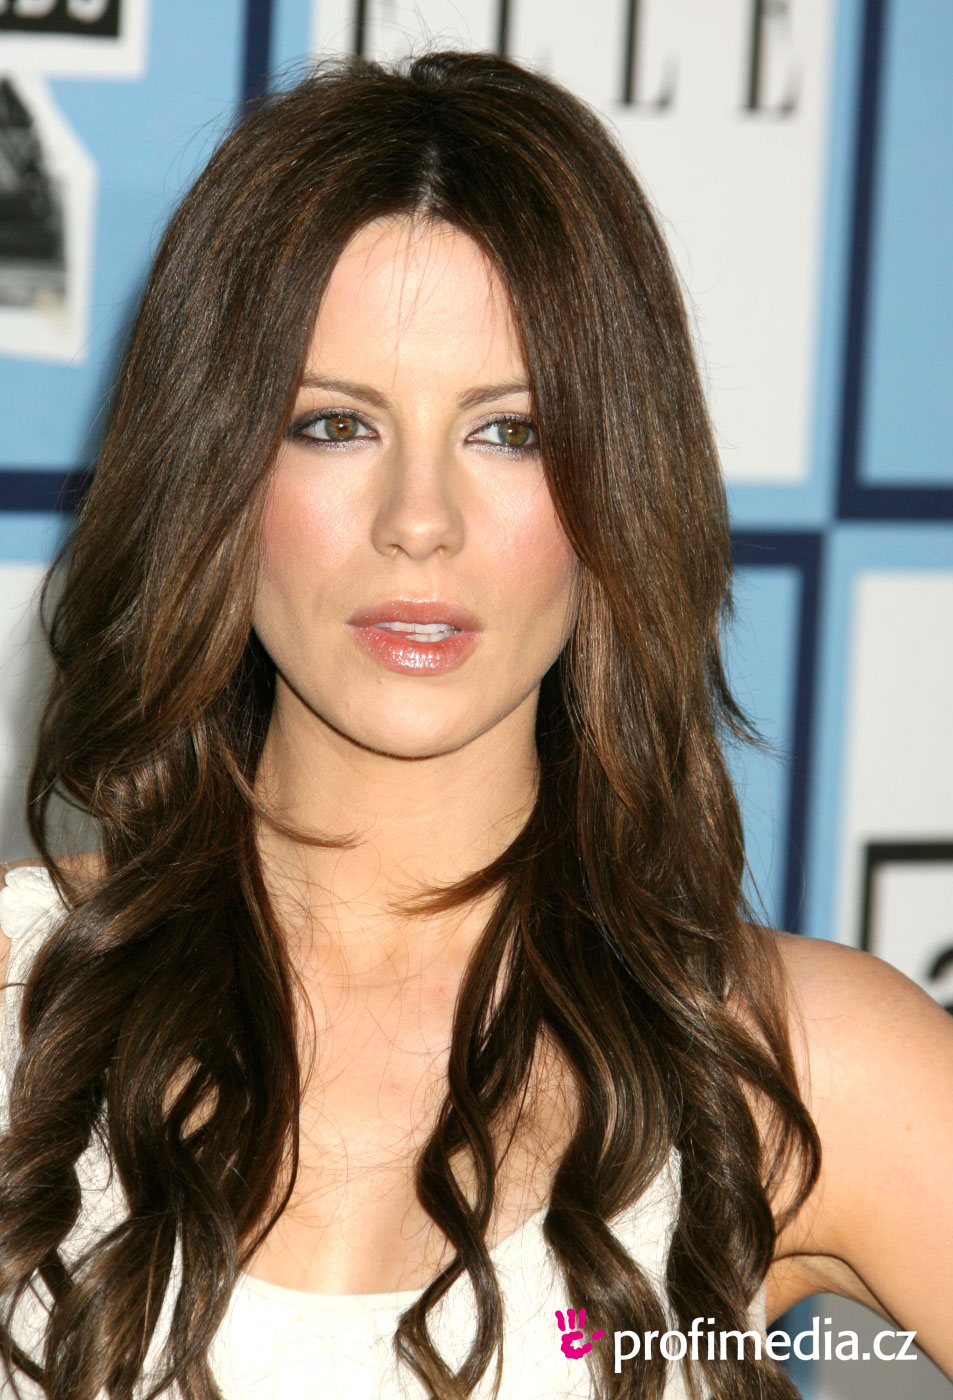 Kate Beckinsale Without Hair Extensions Re Your Favorite Hairstyle